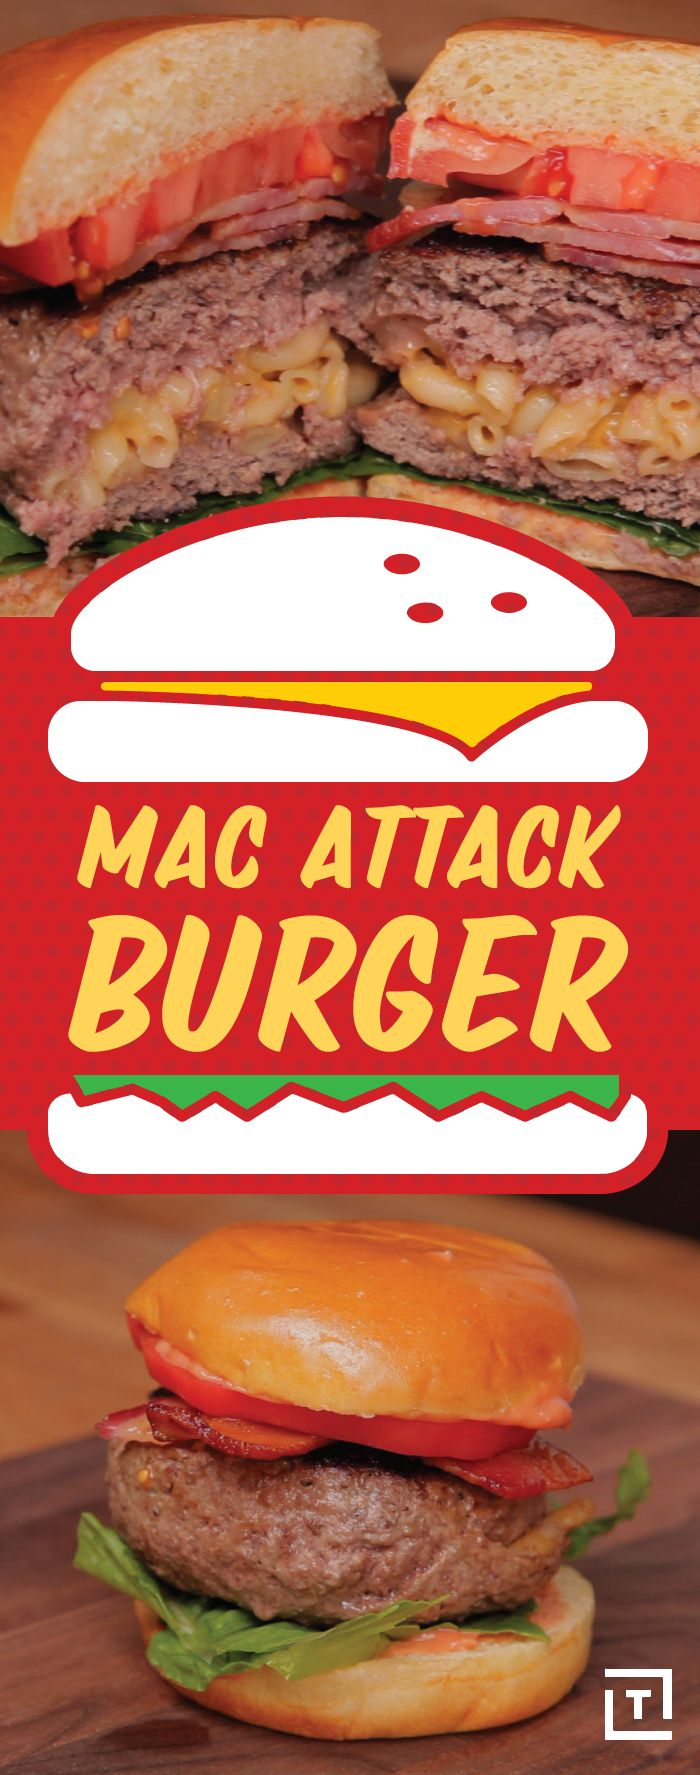 Food Steez is mashing up everyones 2 favorite things to create the Mac Attack Burger, aka homemade gooey mac 'n cheese stuffed into beef patties, and grilled to juicy perfection for a burger that'll leave you totally stuffed and satisfied, you won't regret it.